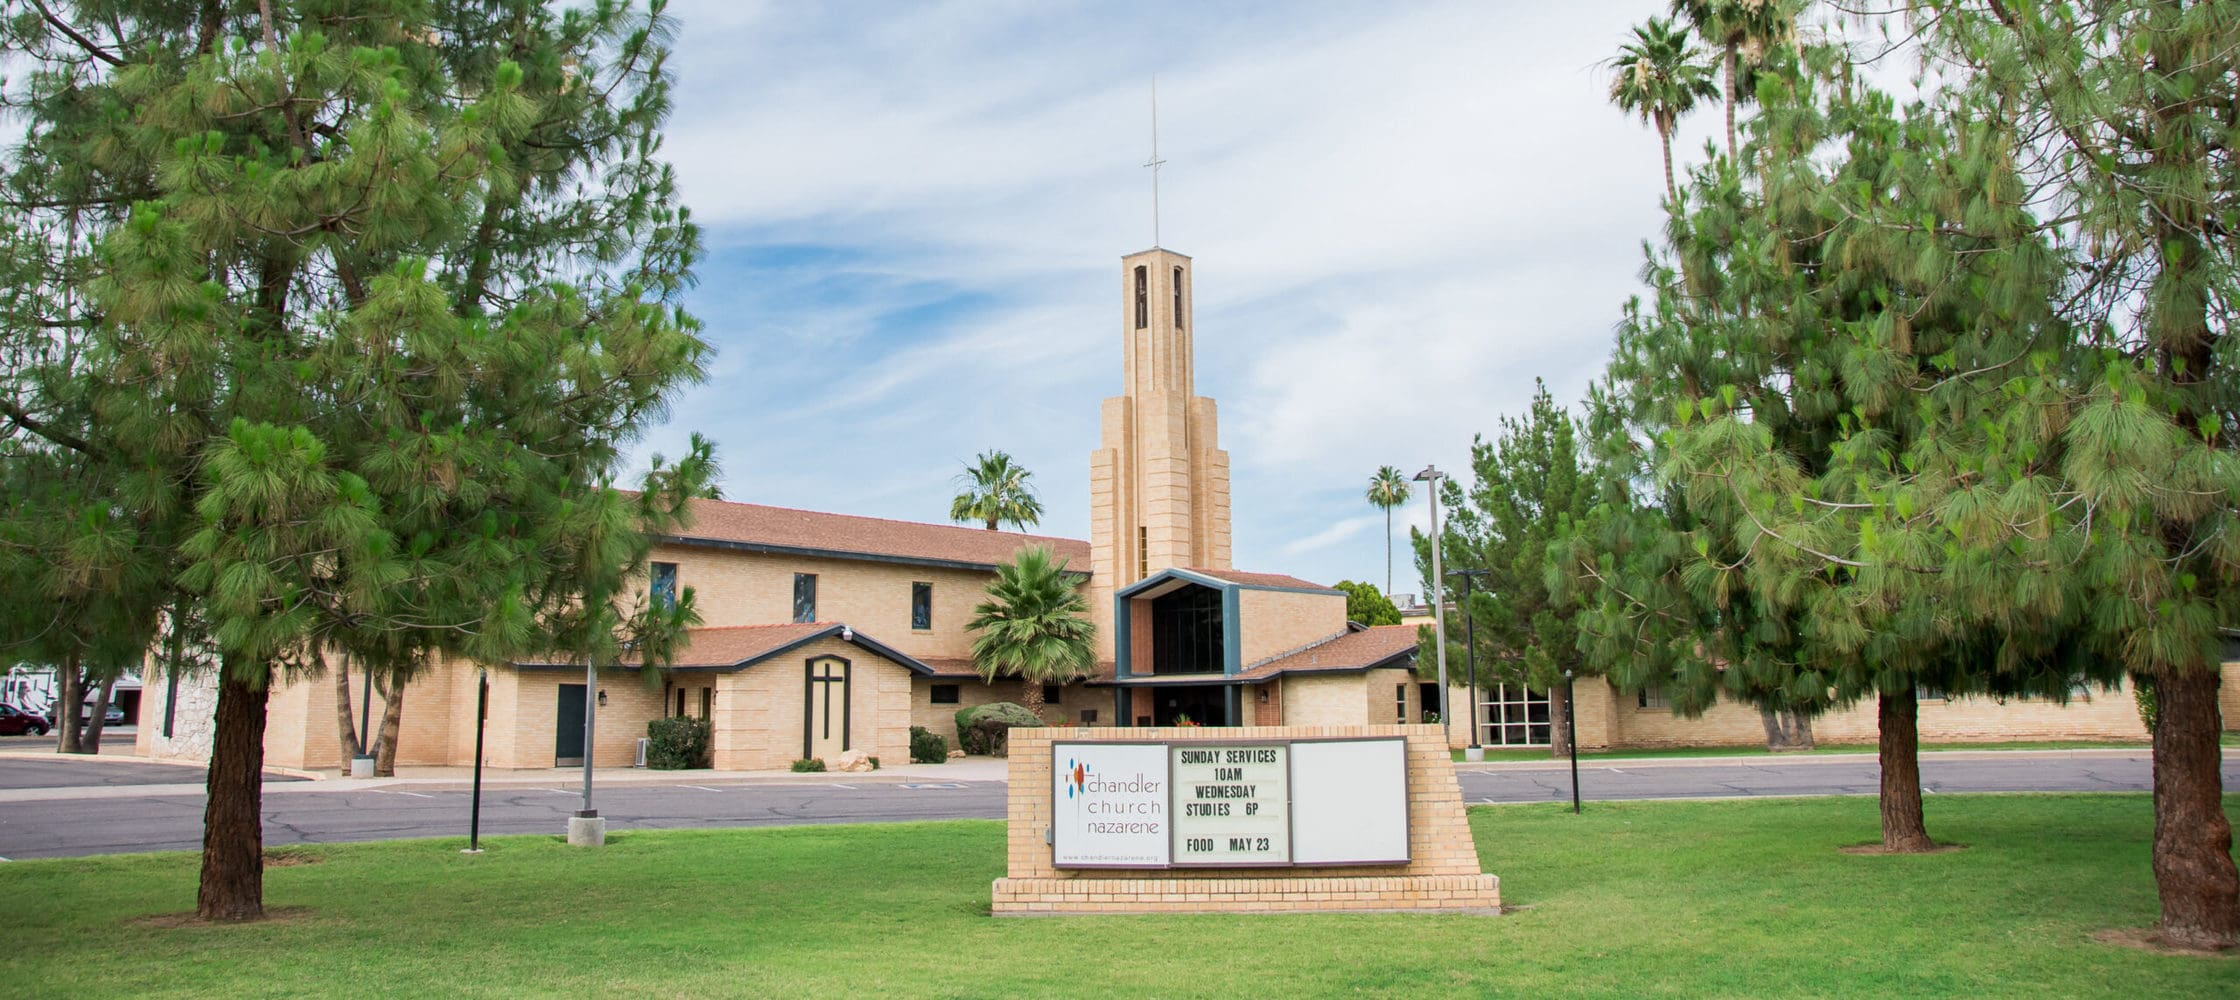 Christian Church in Chandler, Arizona